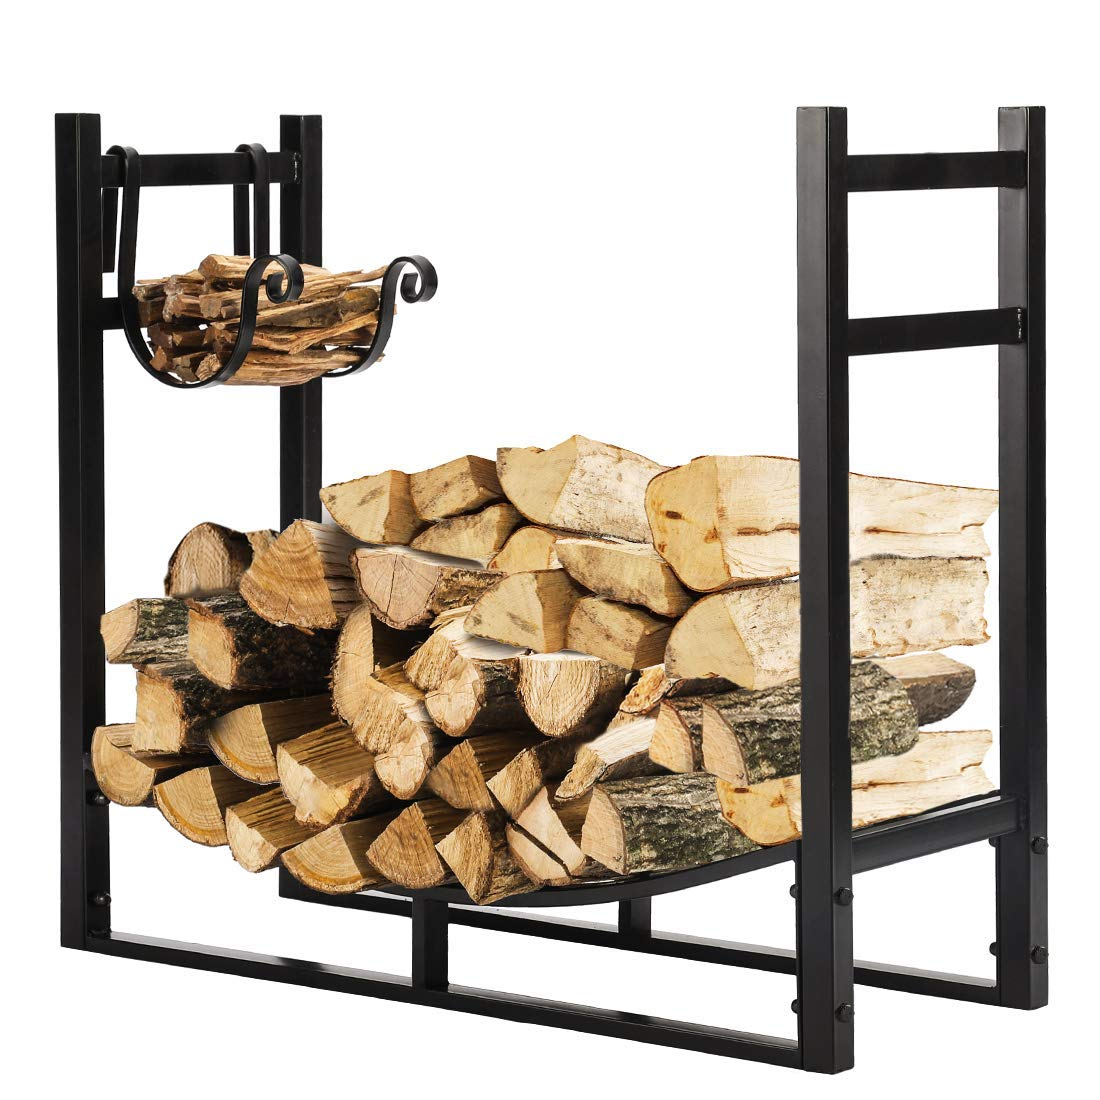 VIVOHOME 3ft Heavy Duty Indoor Outdoor Firewood Storage Log Rack with Kindling Holder by VIVOHOME